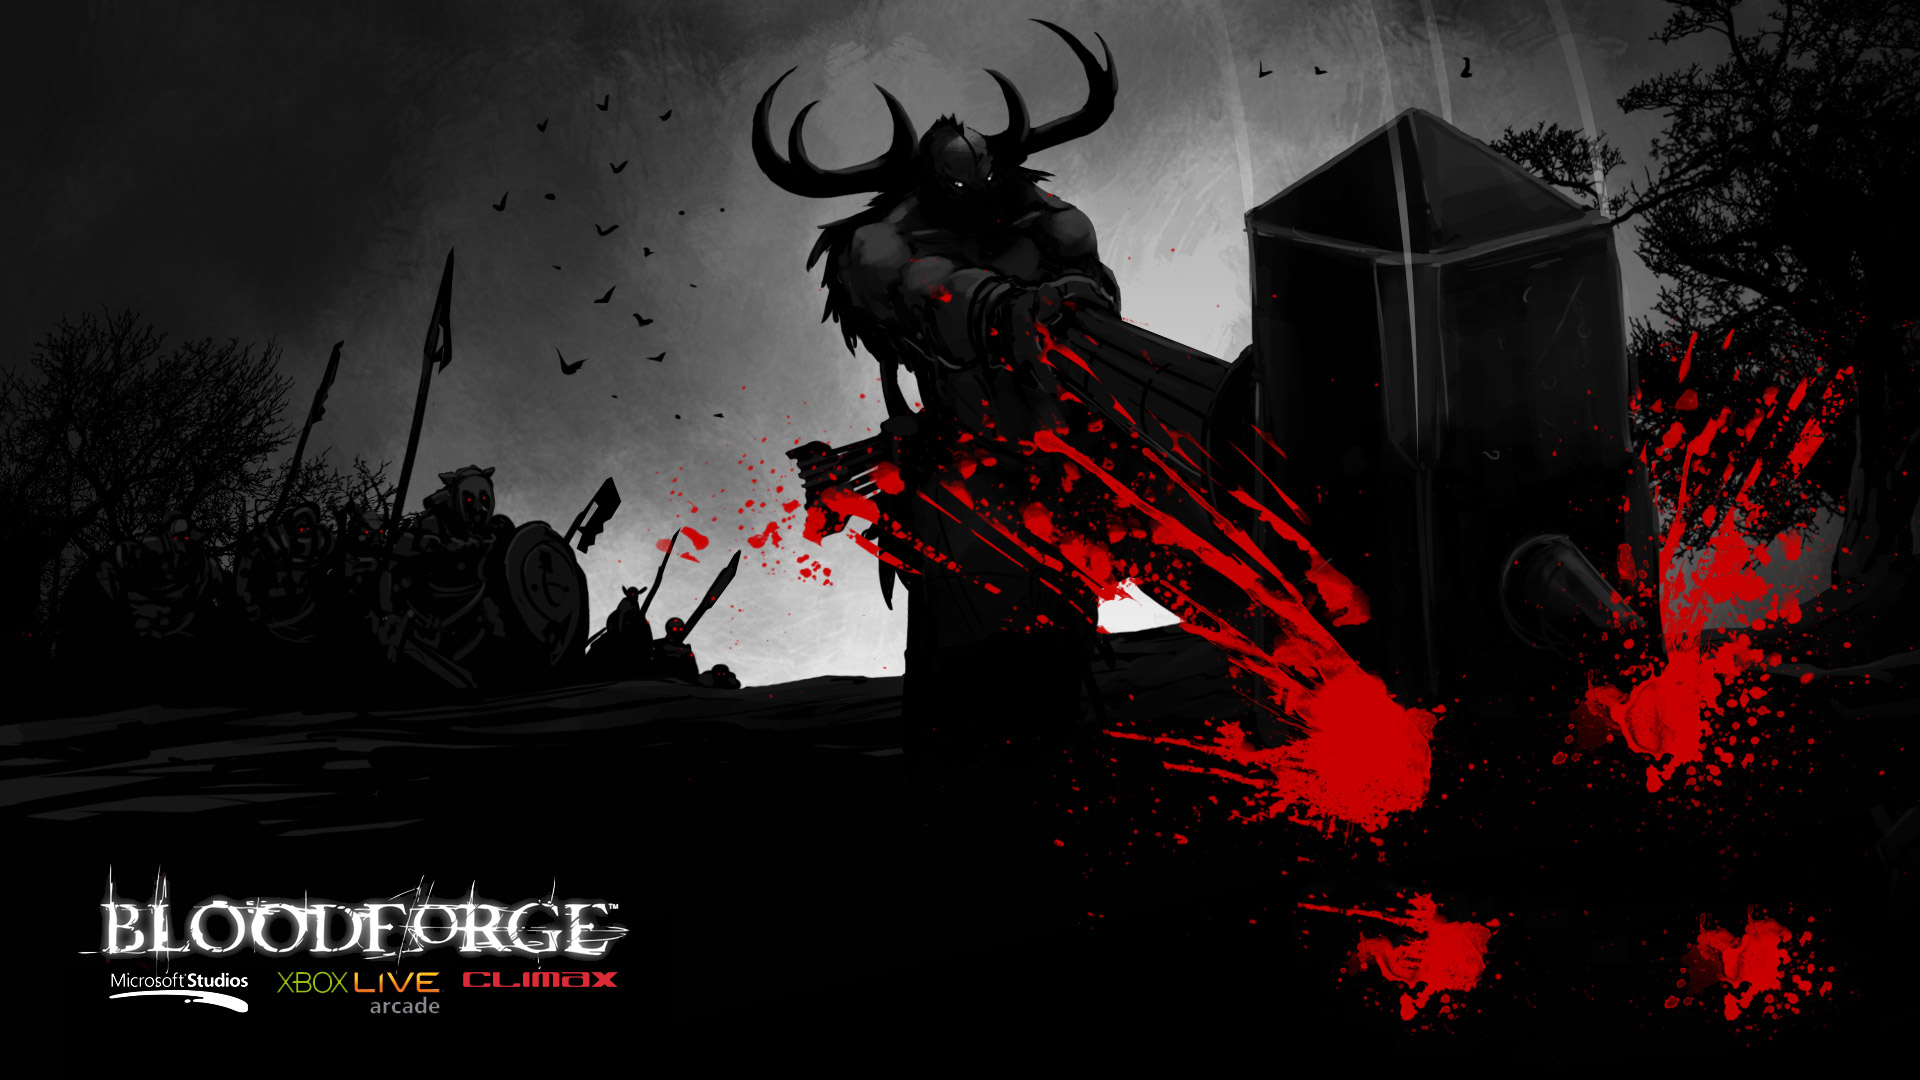 Bloodforge Wallpaper in 1920x1080